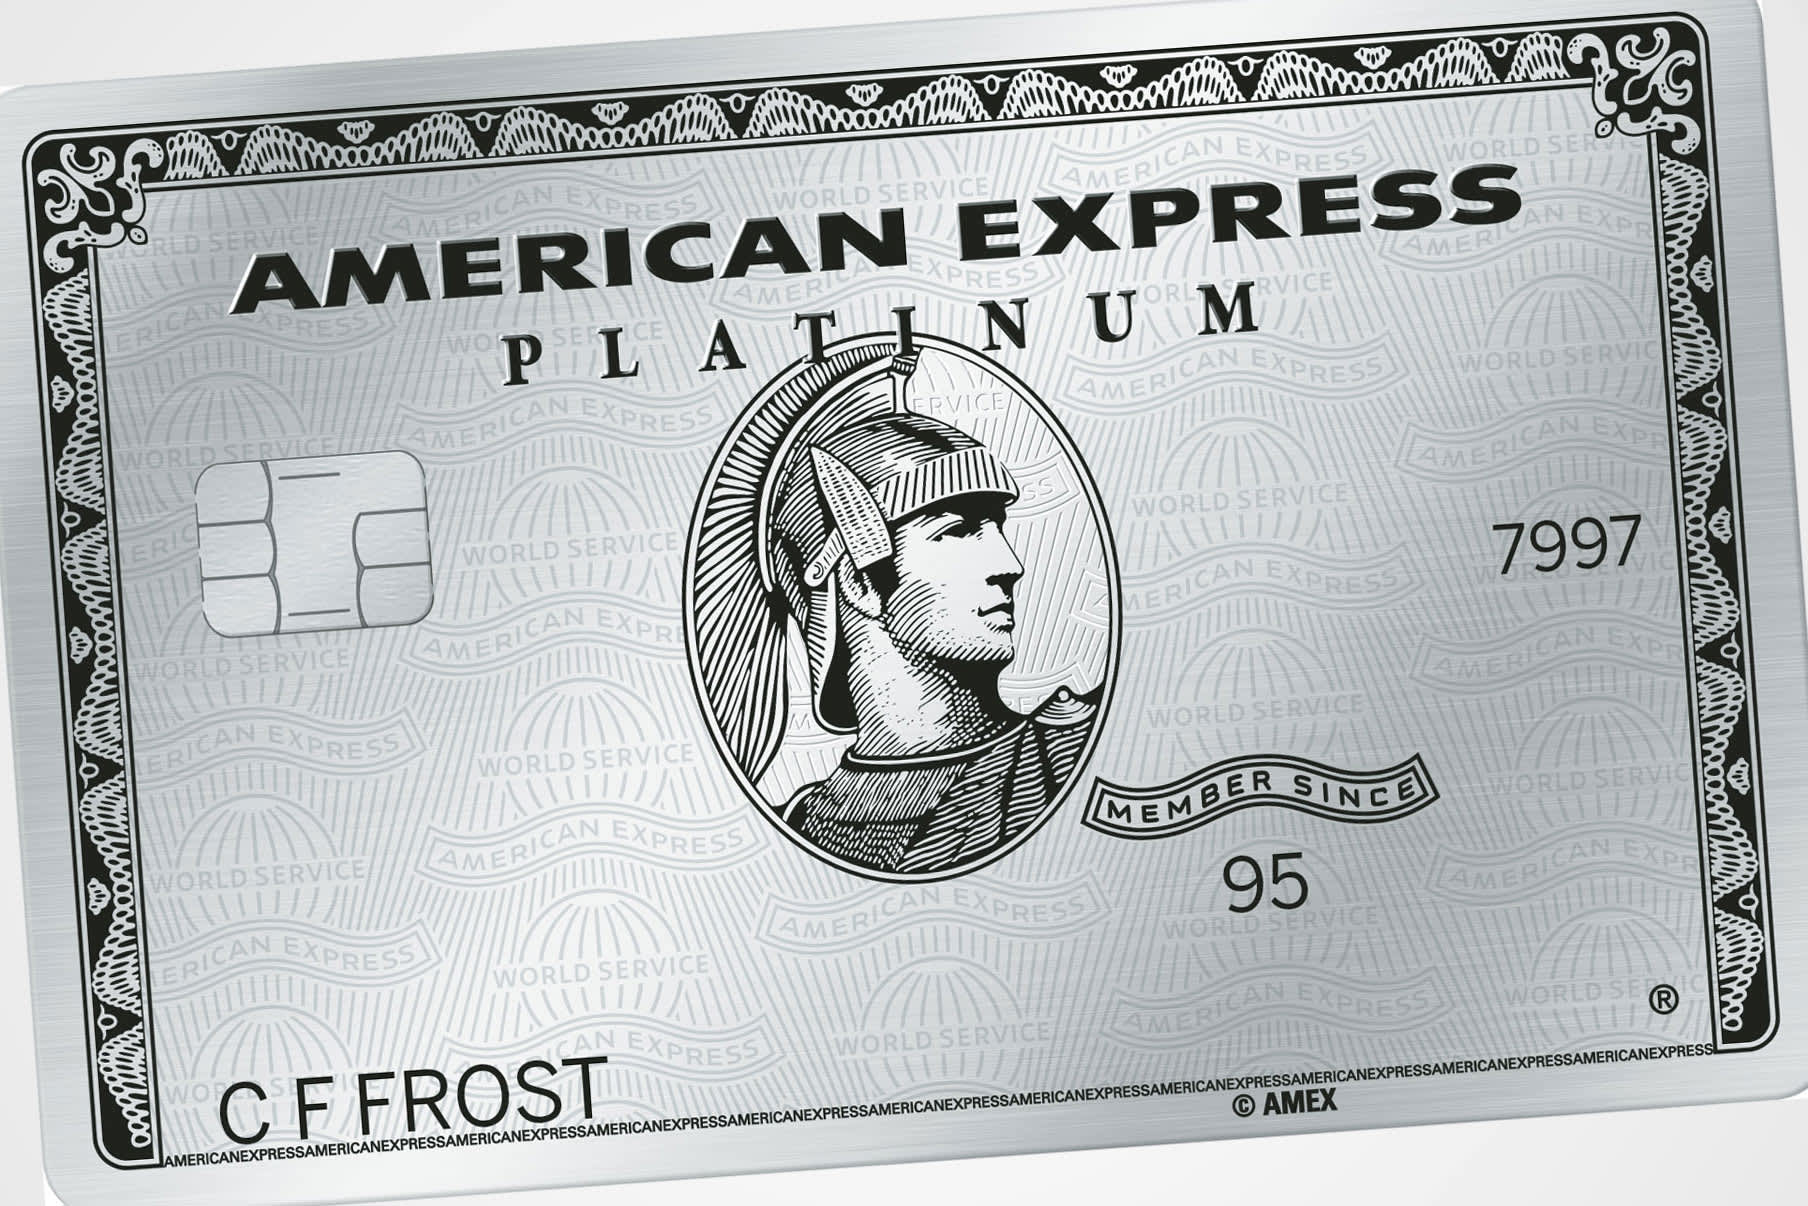 American Express revamps Platinum card with $200 bonuses and $550 fee